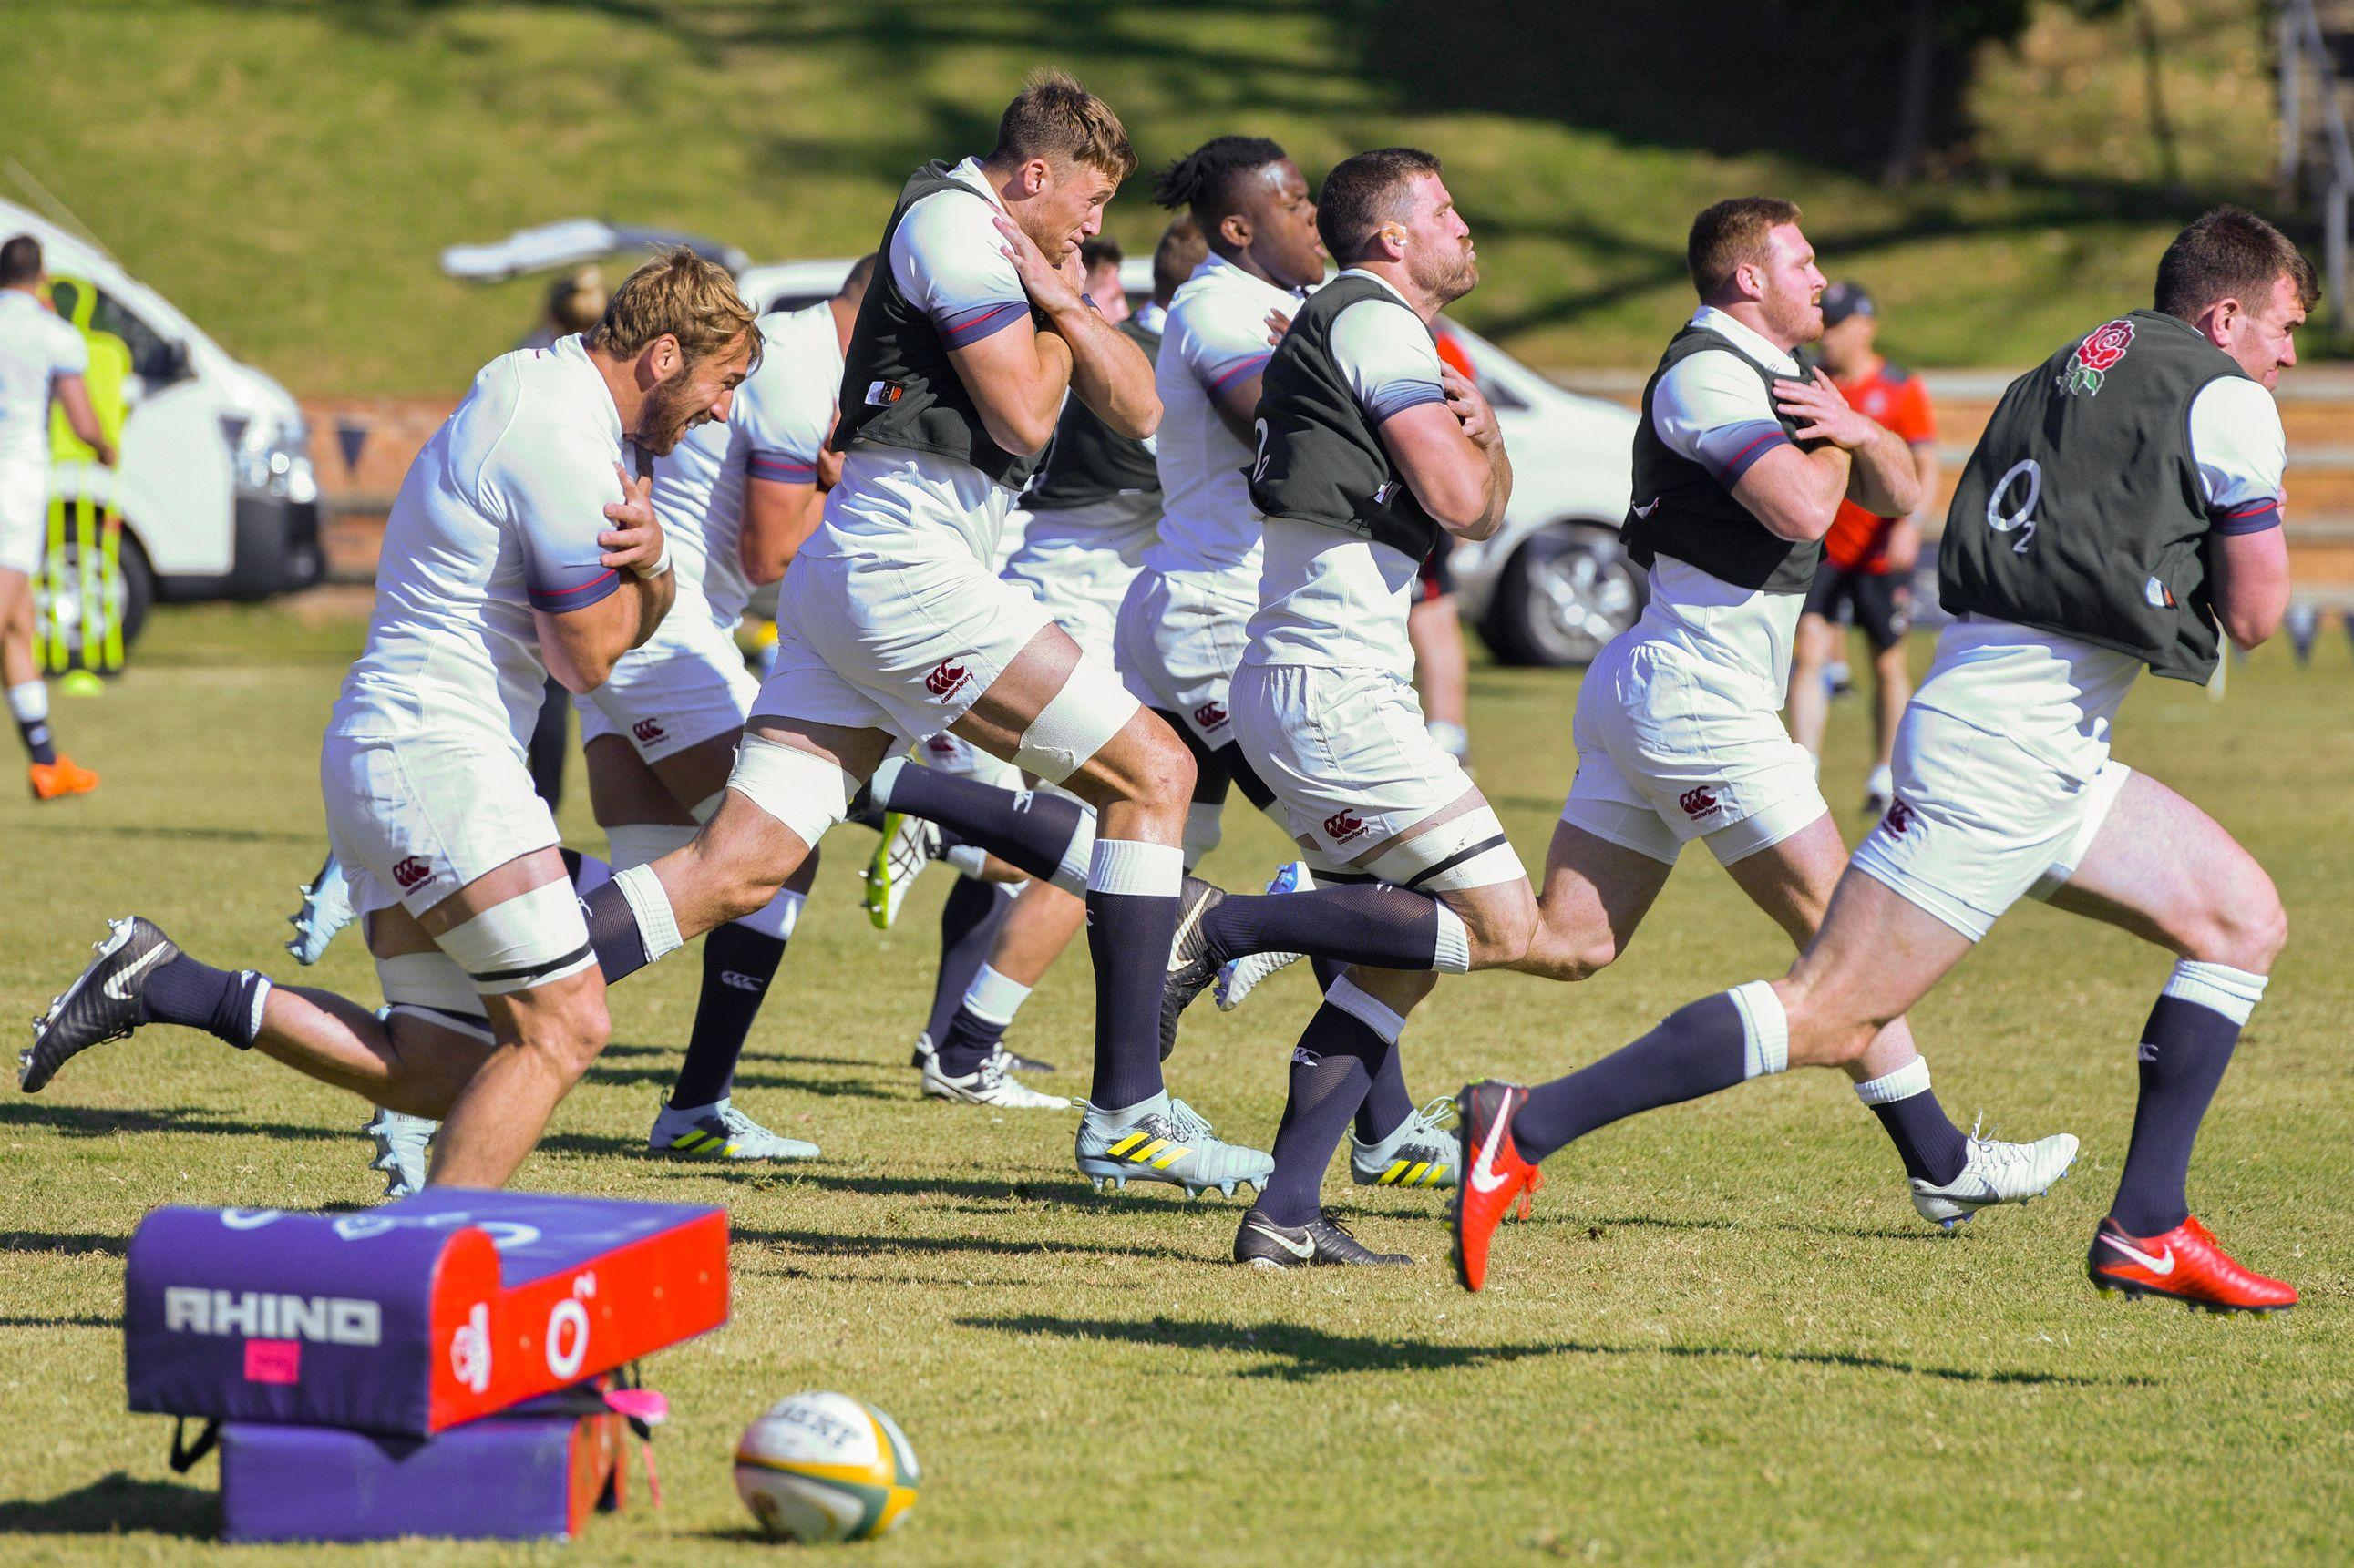 England are put through their paces at a training session at St Stithians College in Sandton, South Africa